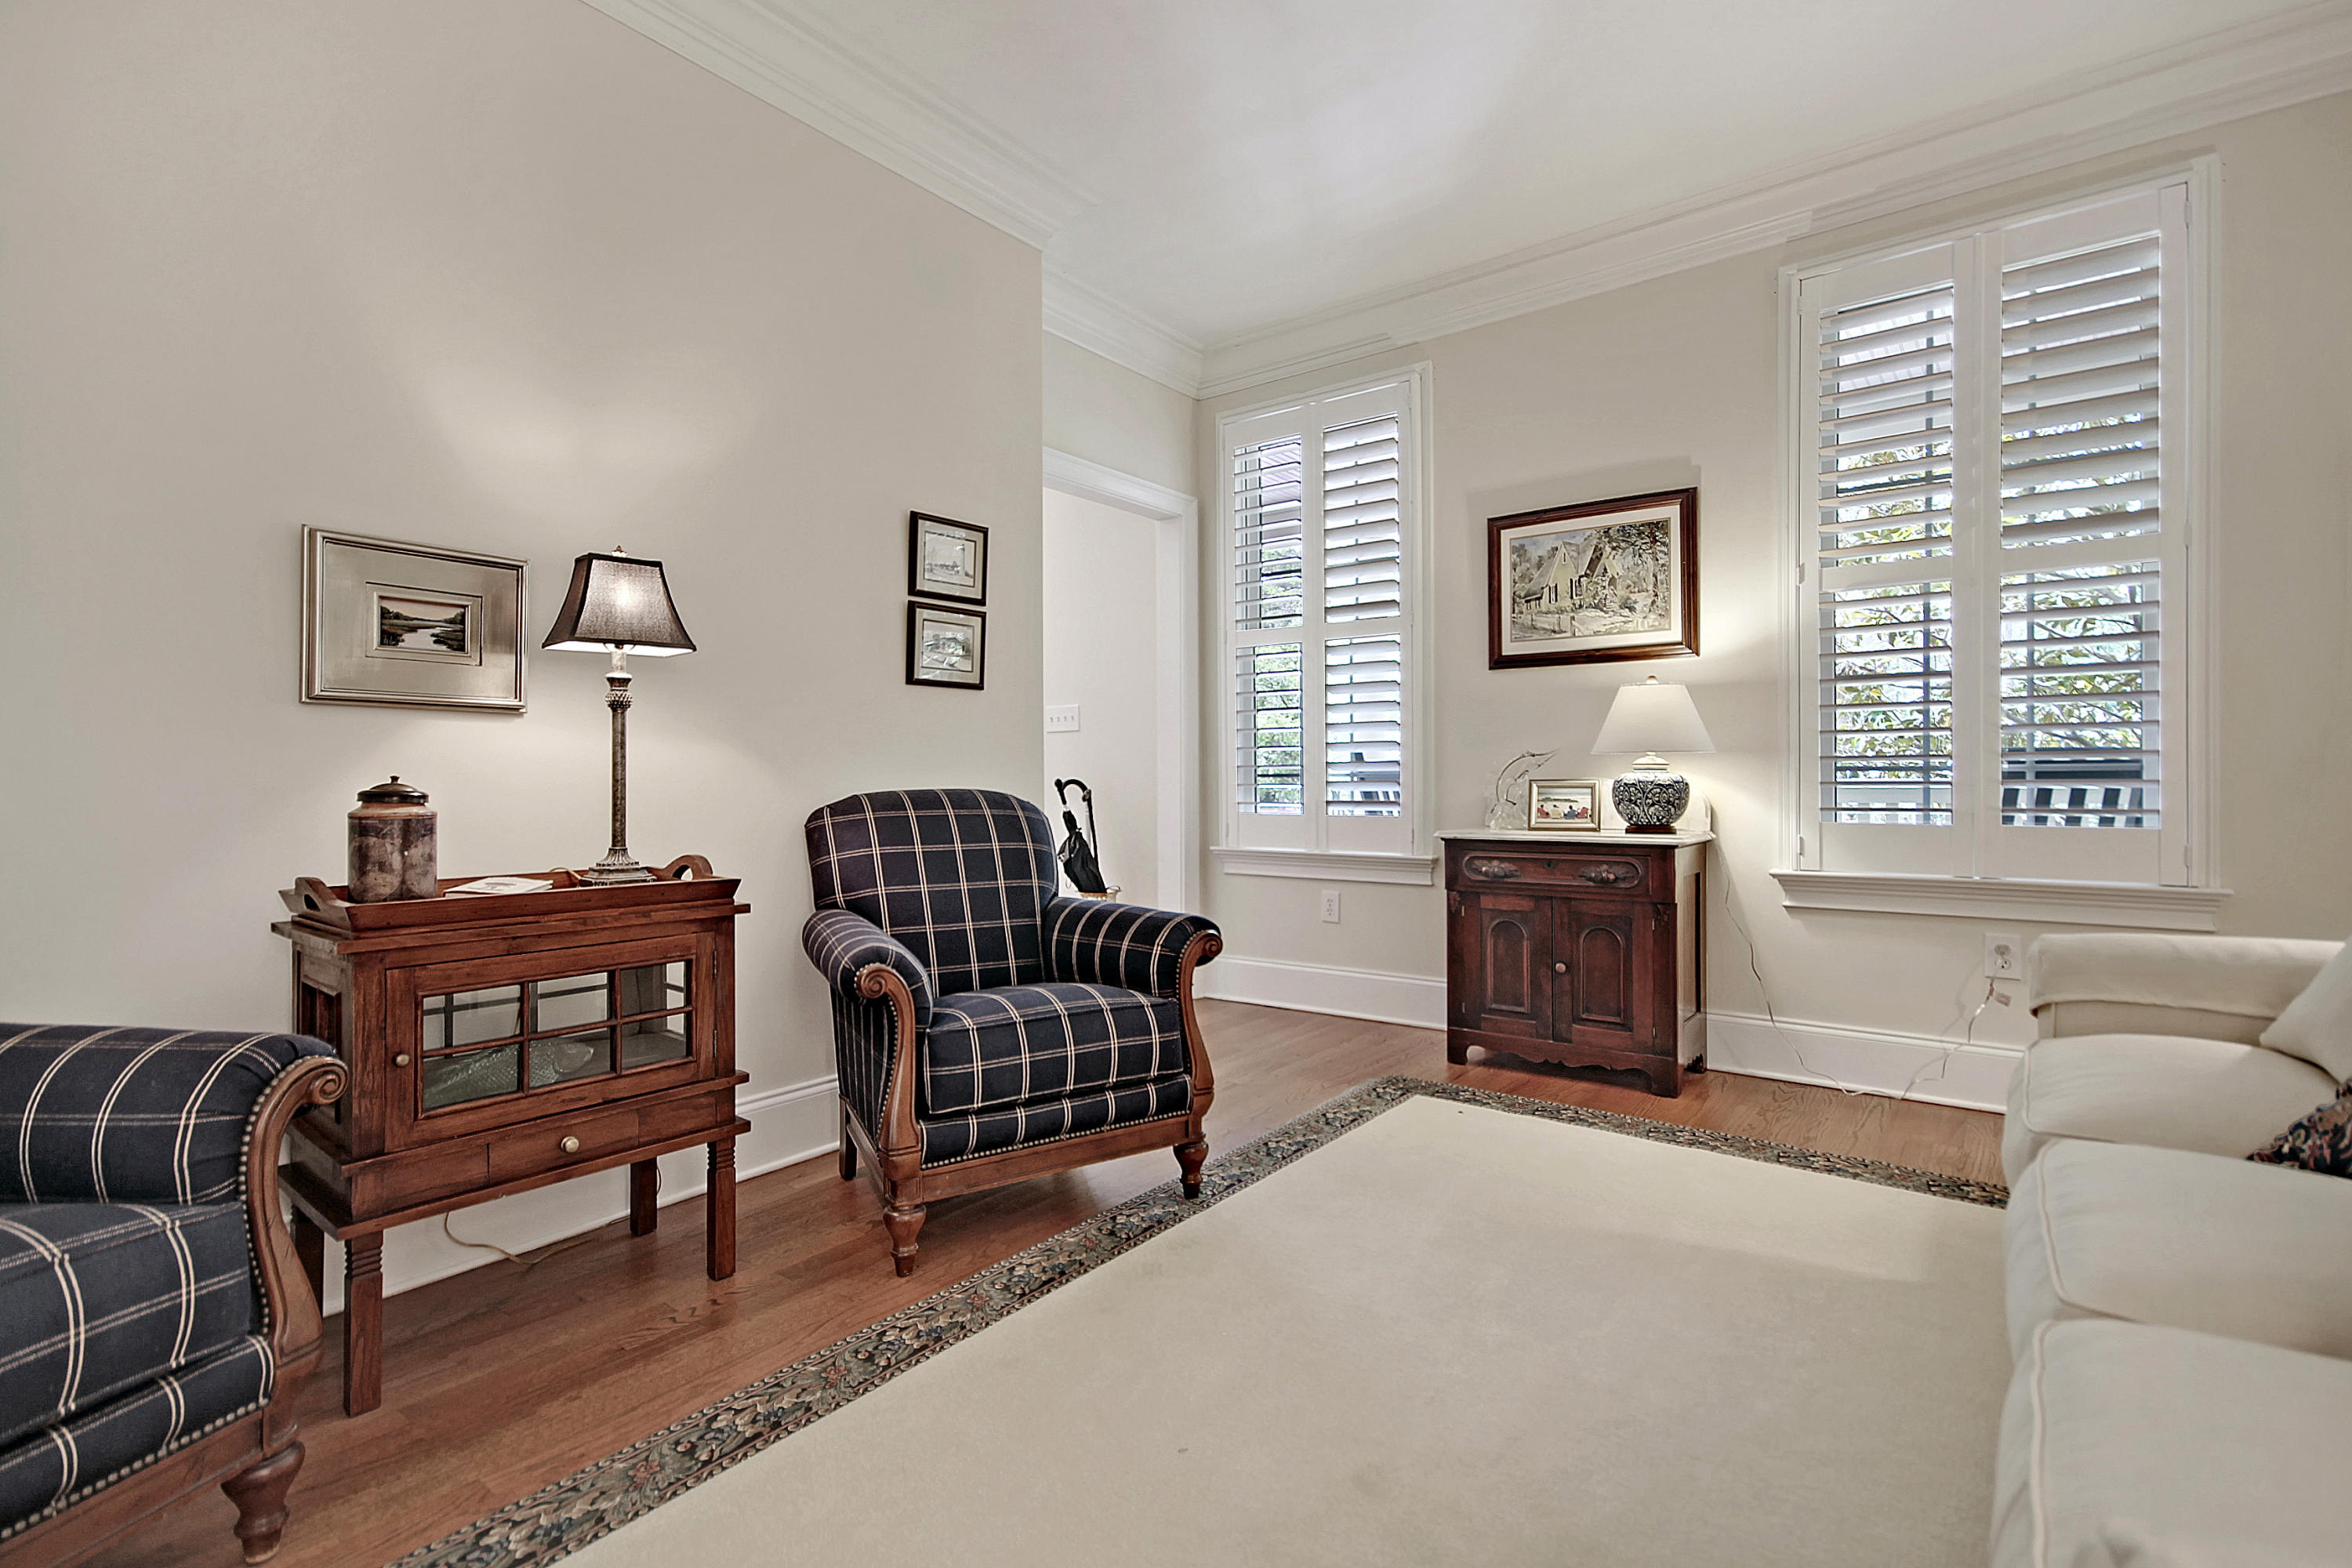 Dunes West Homes For Sale - 1829 Shell Ring, Mount Pleasant, SC - 31